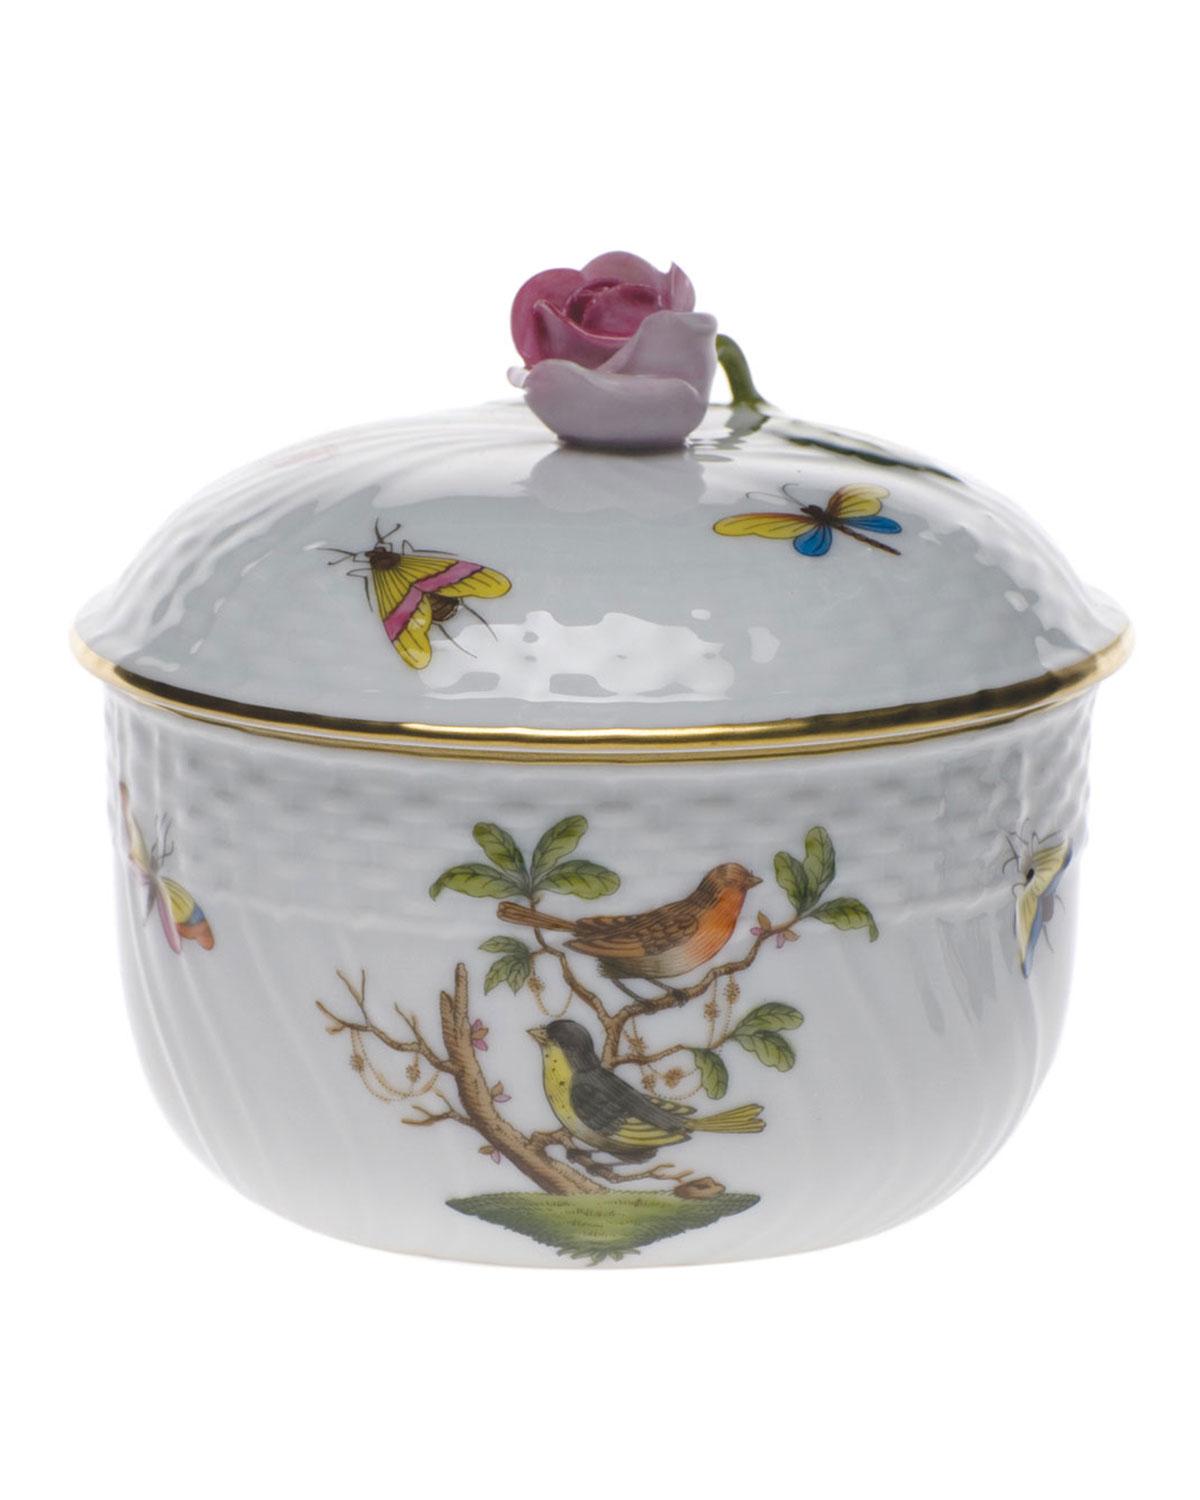 Rothschild Covered Sugar Bowl